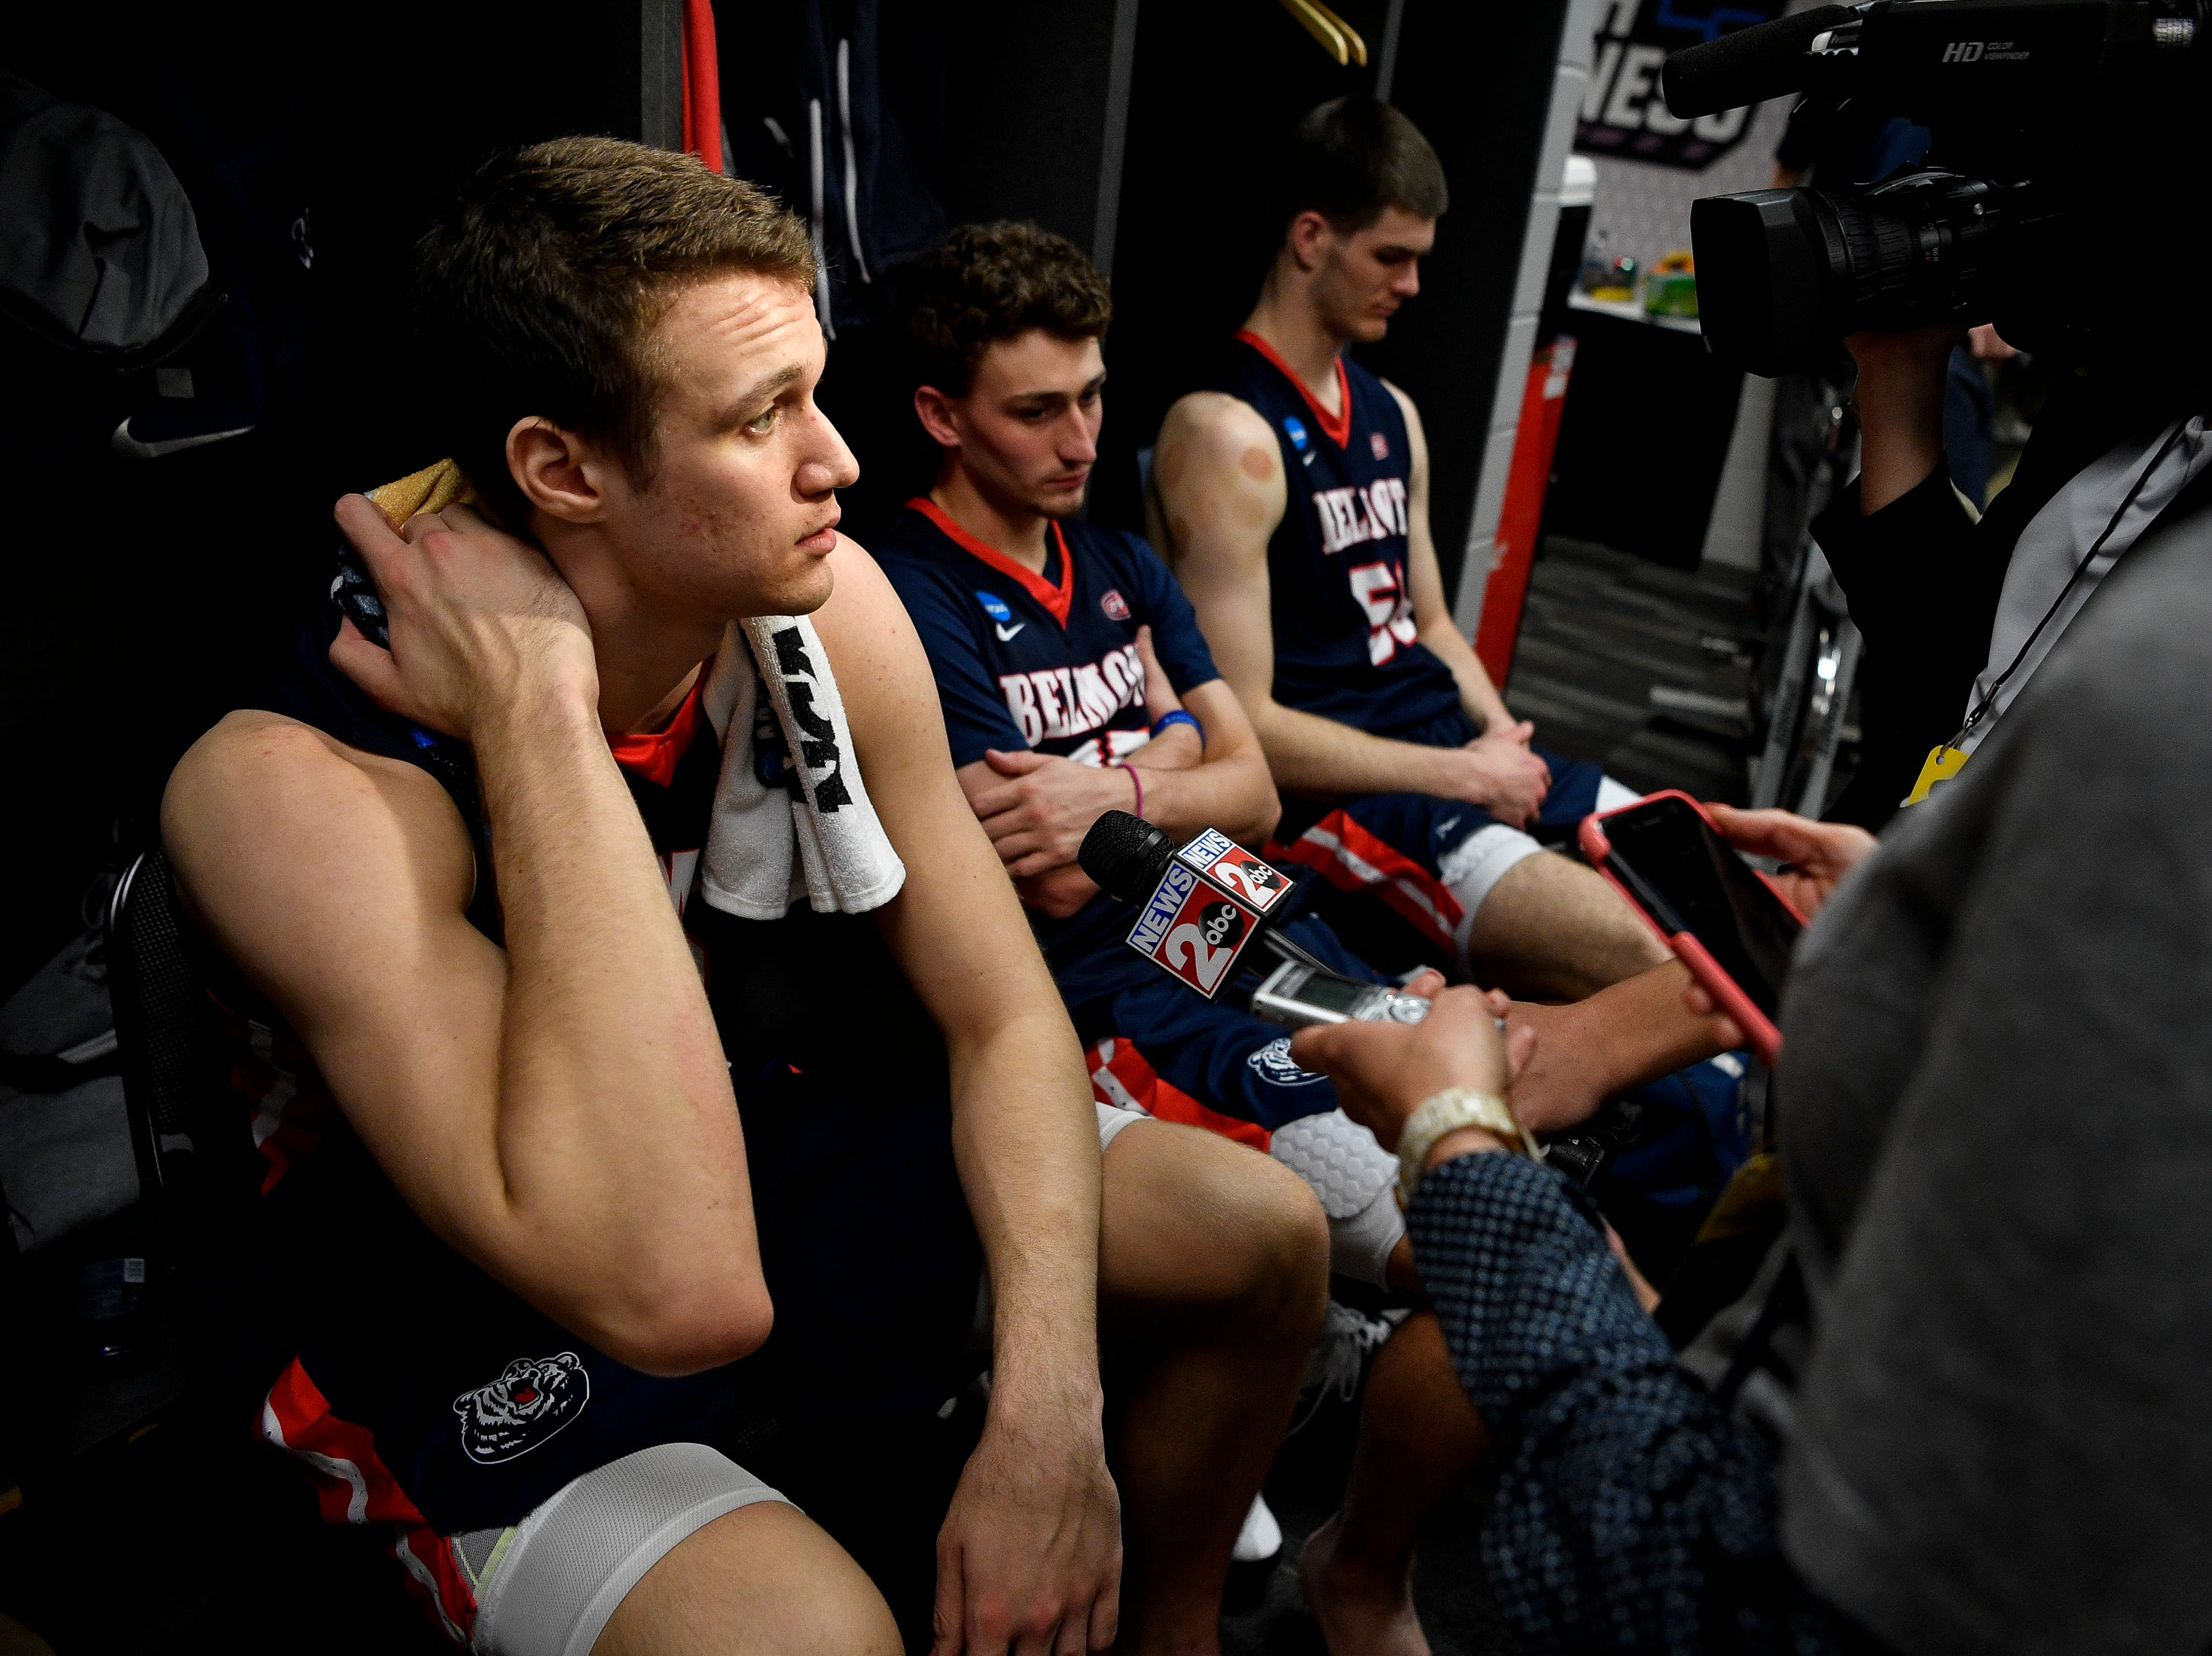 Belmont center Nick Muszynski (33) speaks to reporters in the locker room after their first-round NCAA college basketball tournament loss to Maryland at VyStar Veterans Memorial Arena in Jacksonville, Fla., Thursday, March 21, 2019.